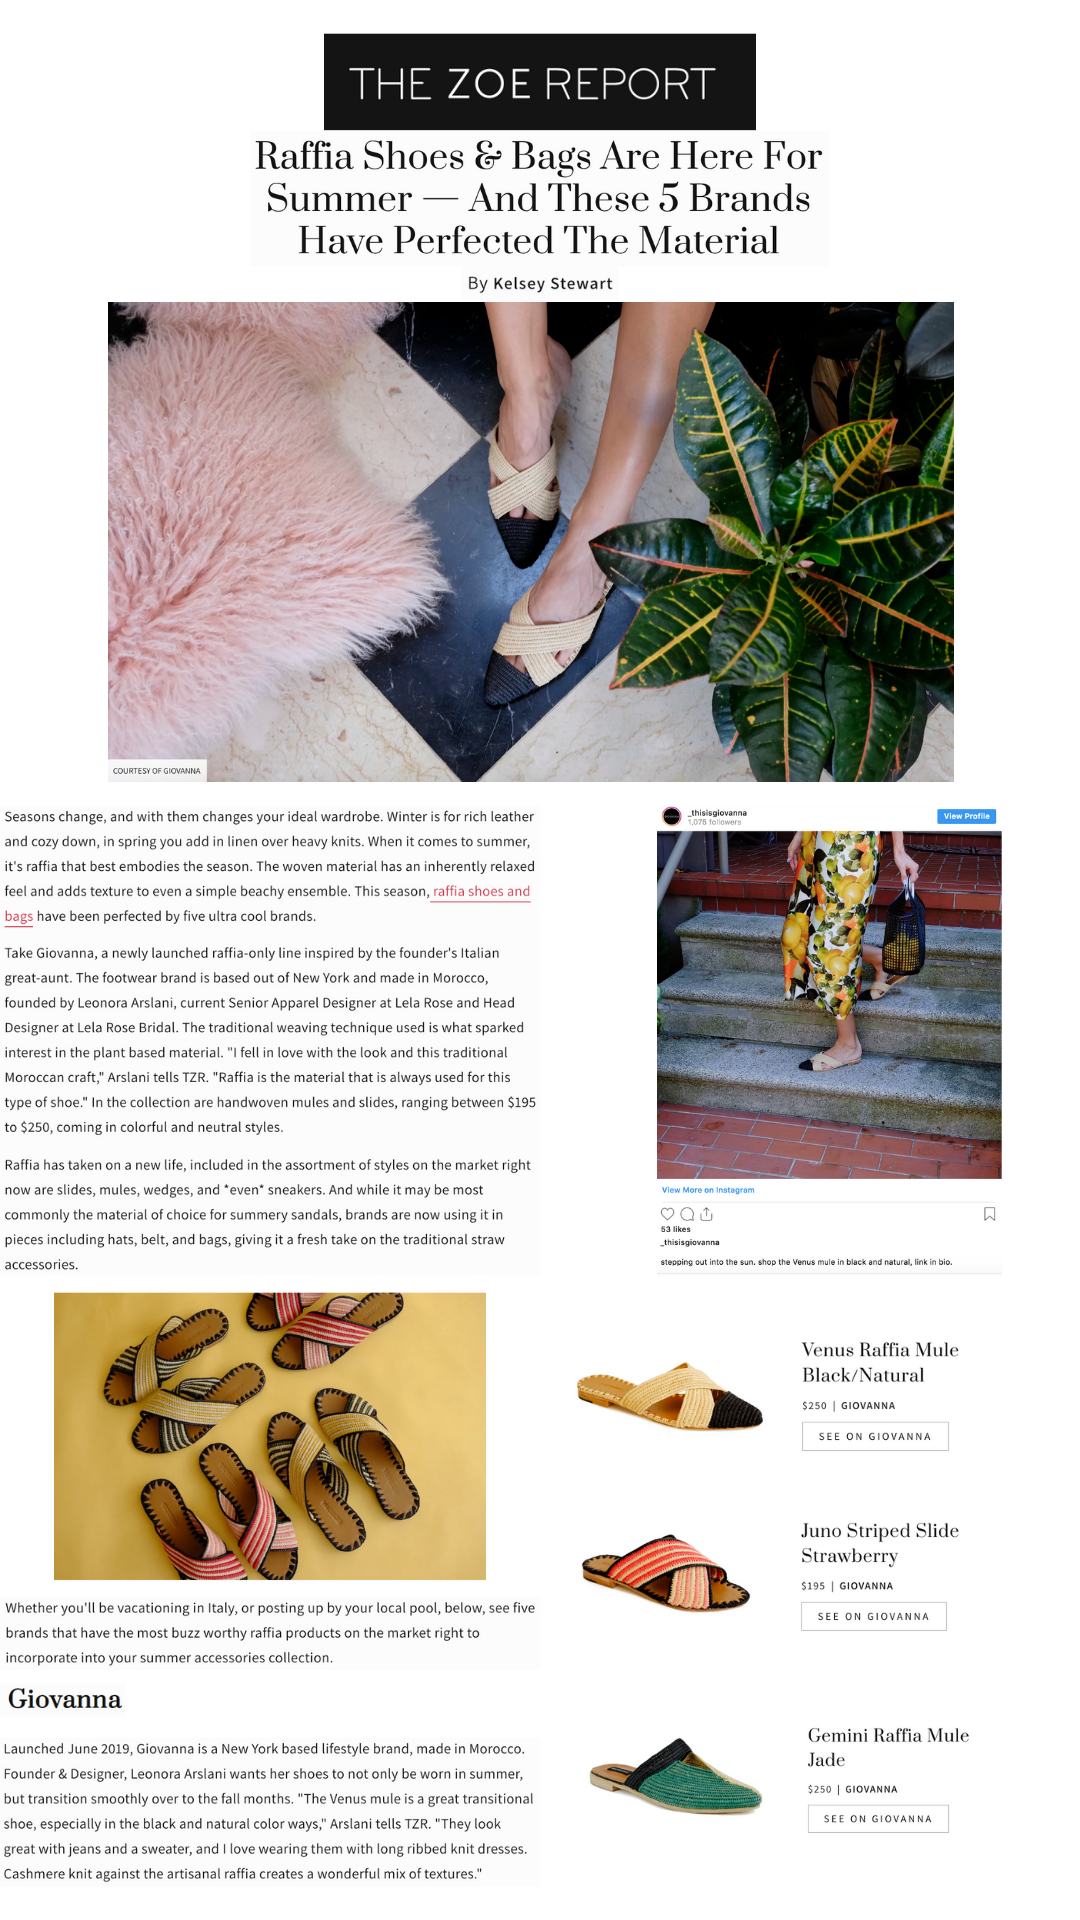 TheZoeReport_Giovanna_7.19.19 (1).png